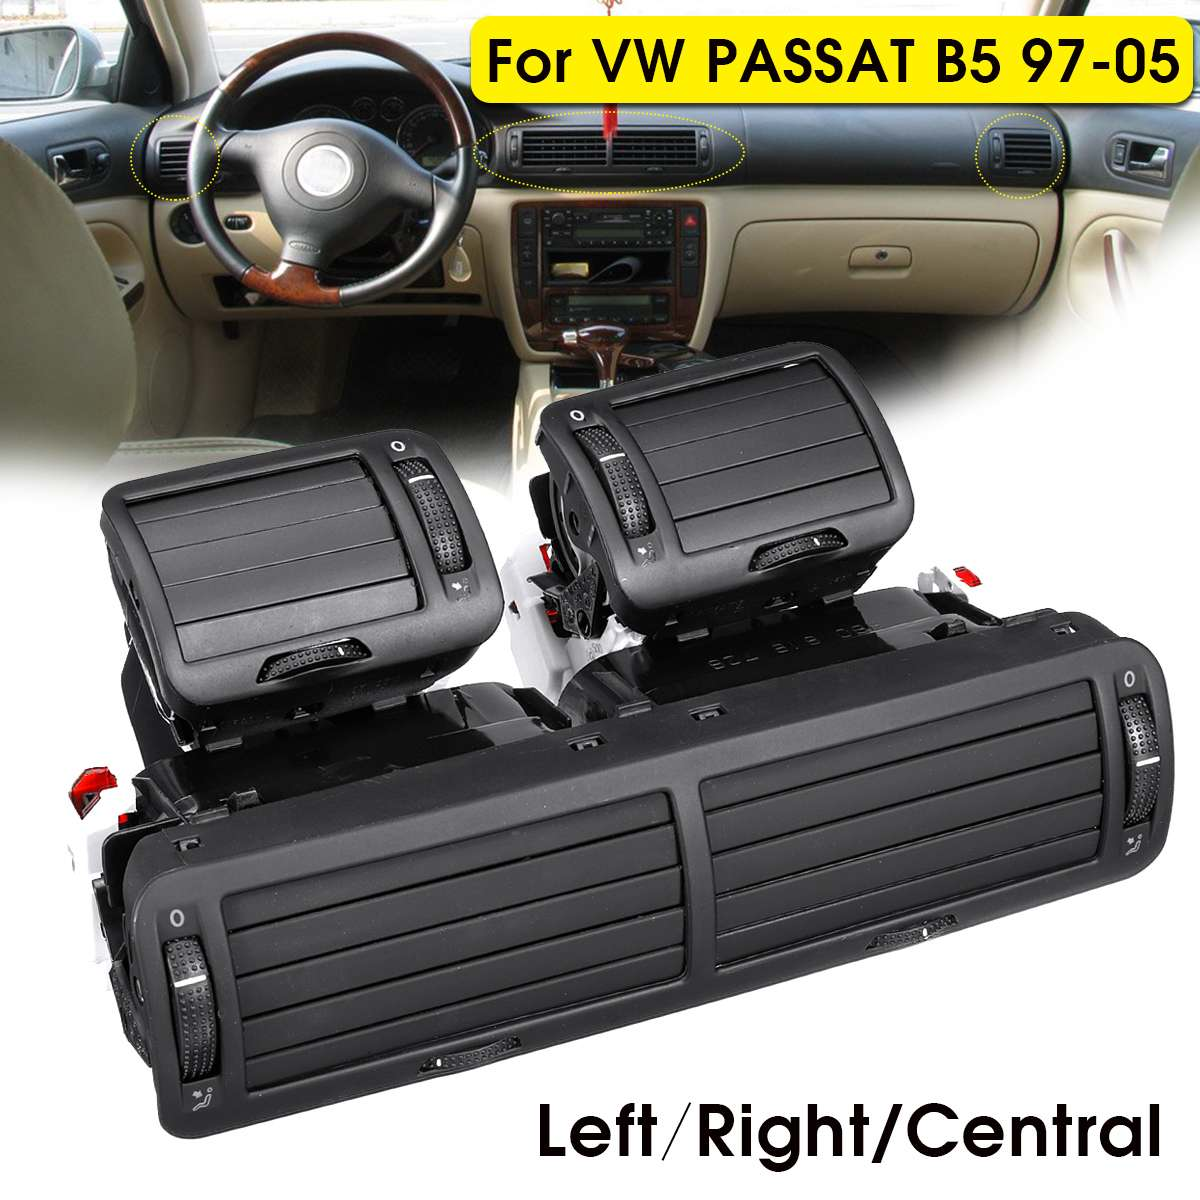 Front Dashboard Left / Right / Central Air Vent Outlet A/C Heater For VW Passat B5 1997 1998 1999 2000 2001 2002 2003 2004 2005(China)